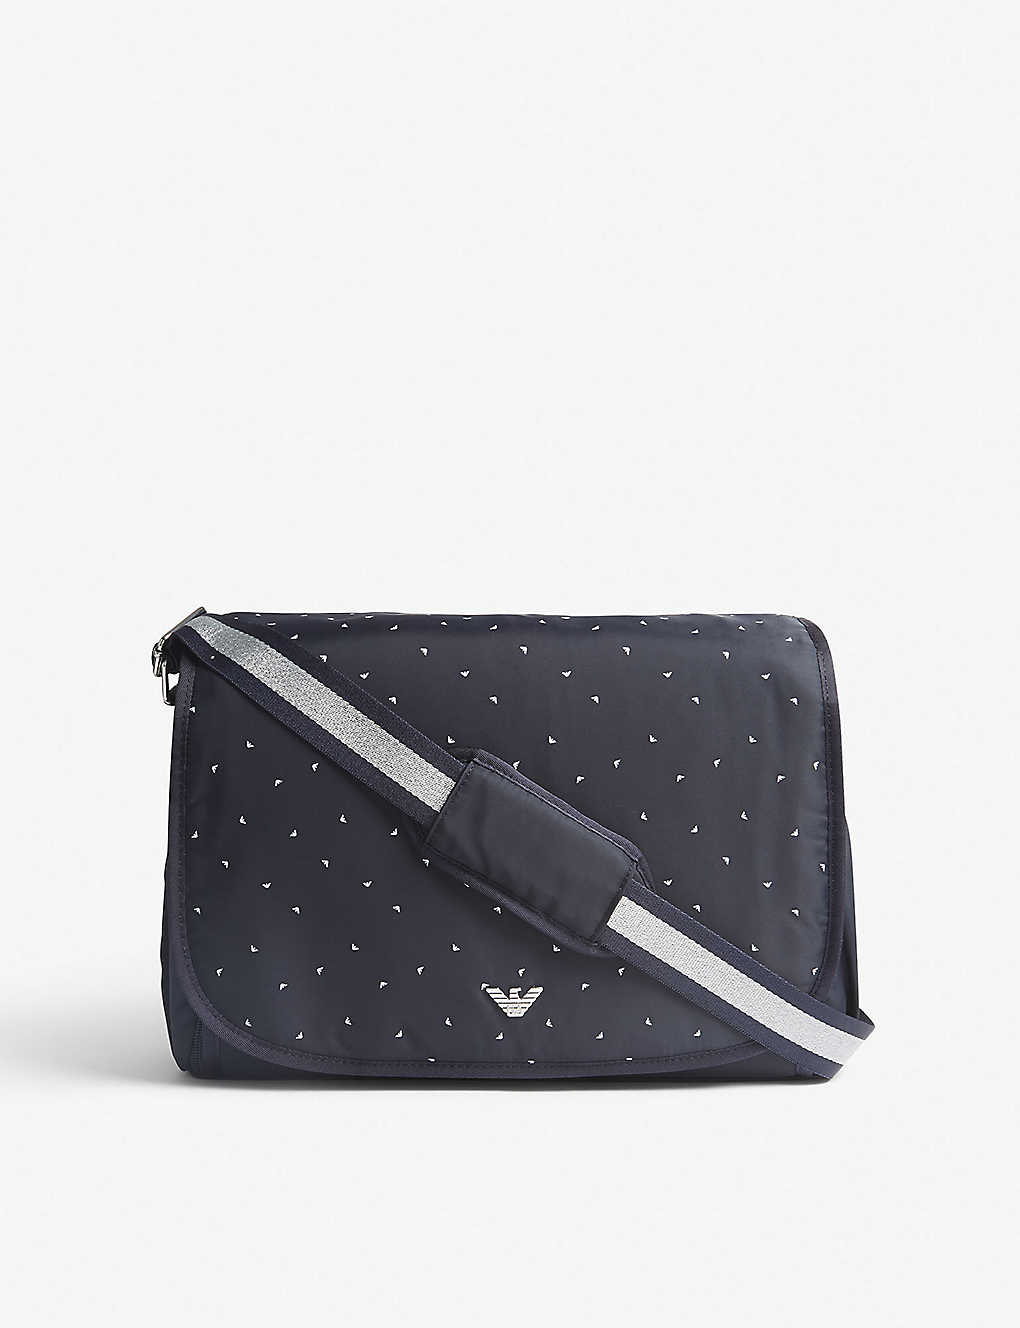 f0386178a8ffe EMPORIO ARMANI - Eagle-print nylon changing bag | Selfridges.com